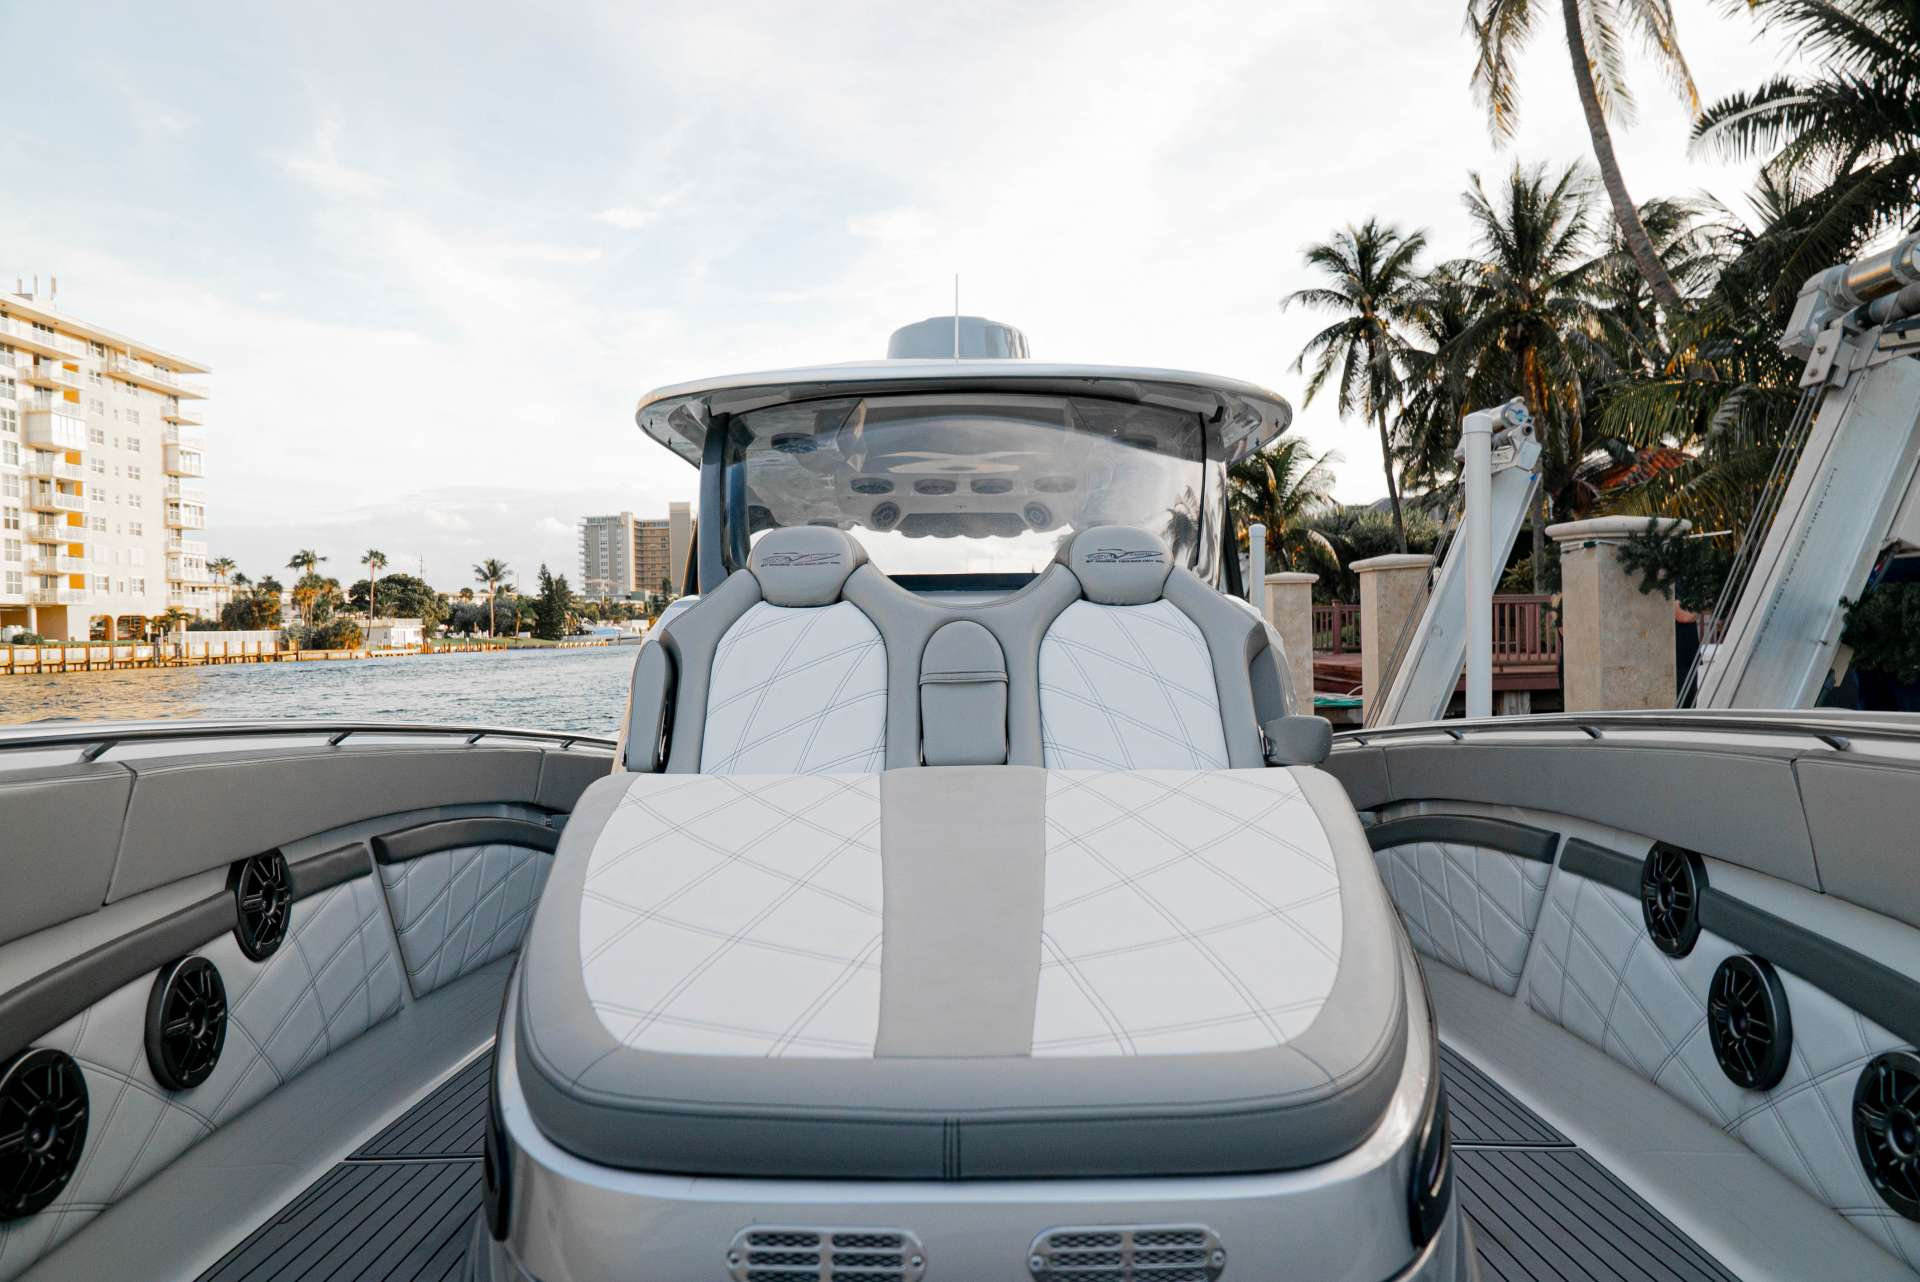 Image of INVISION yacht #17